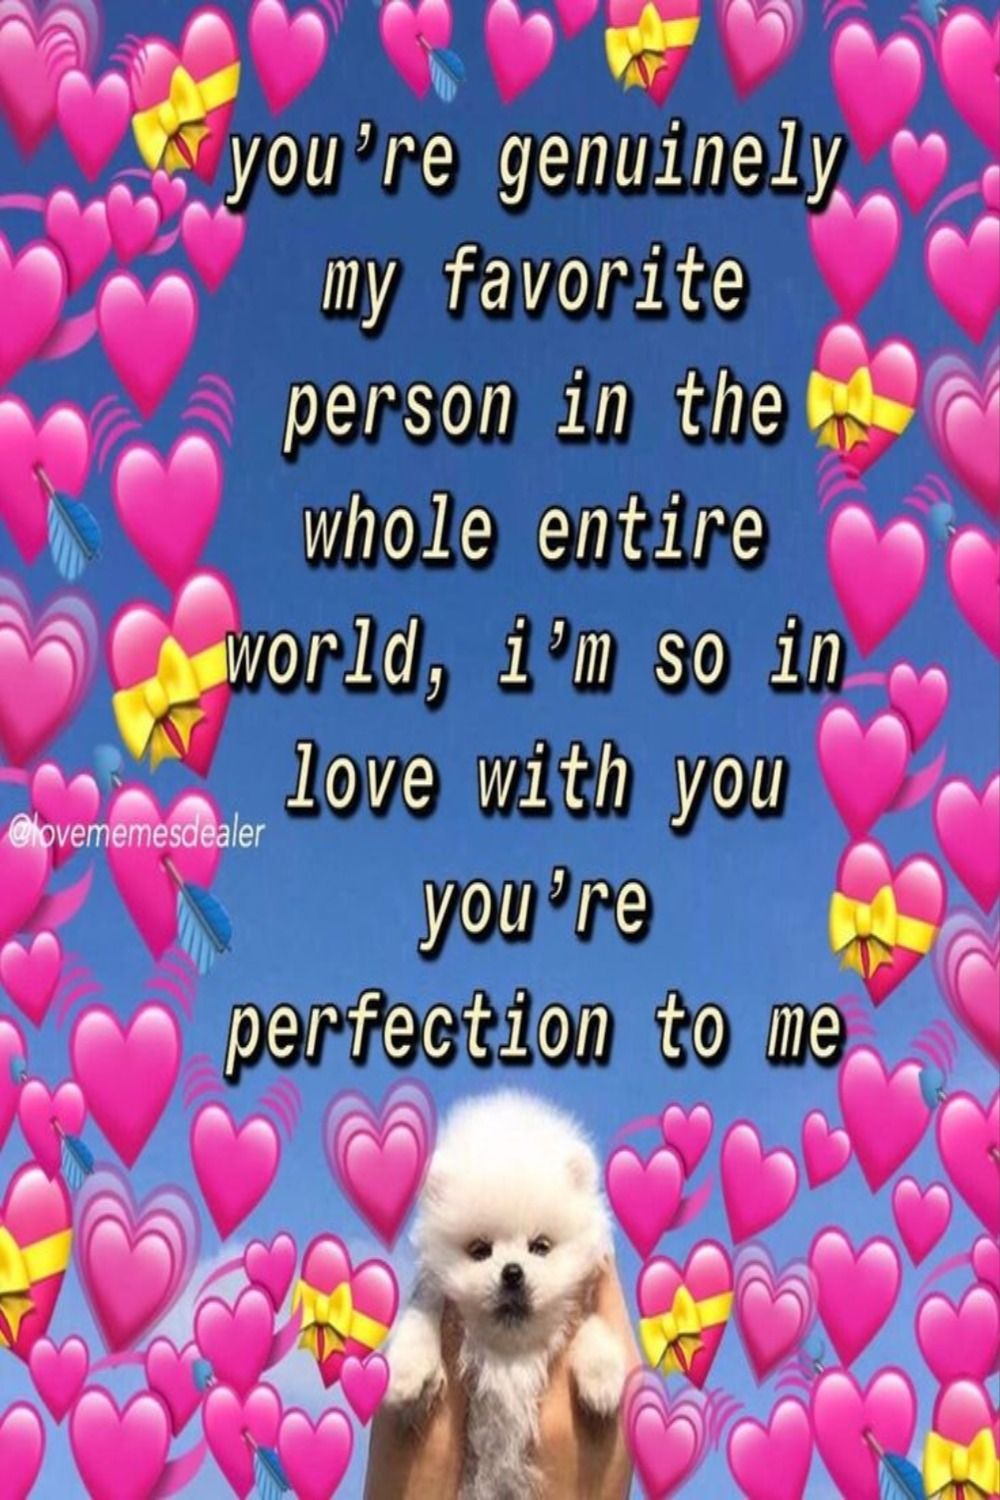 Love Memes For Her And Him Funny I Love You Memes Love Memes Funny Love You Meme Cute Love Memes